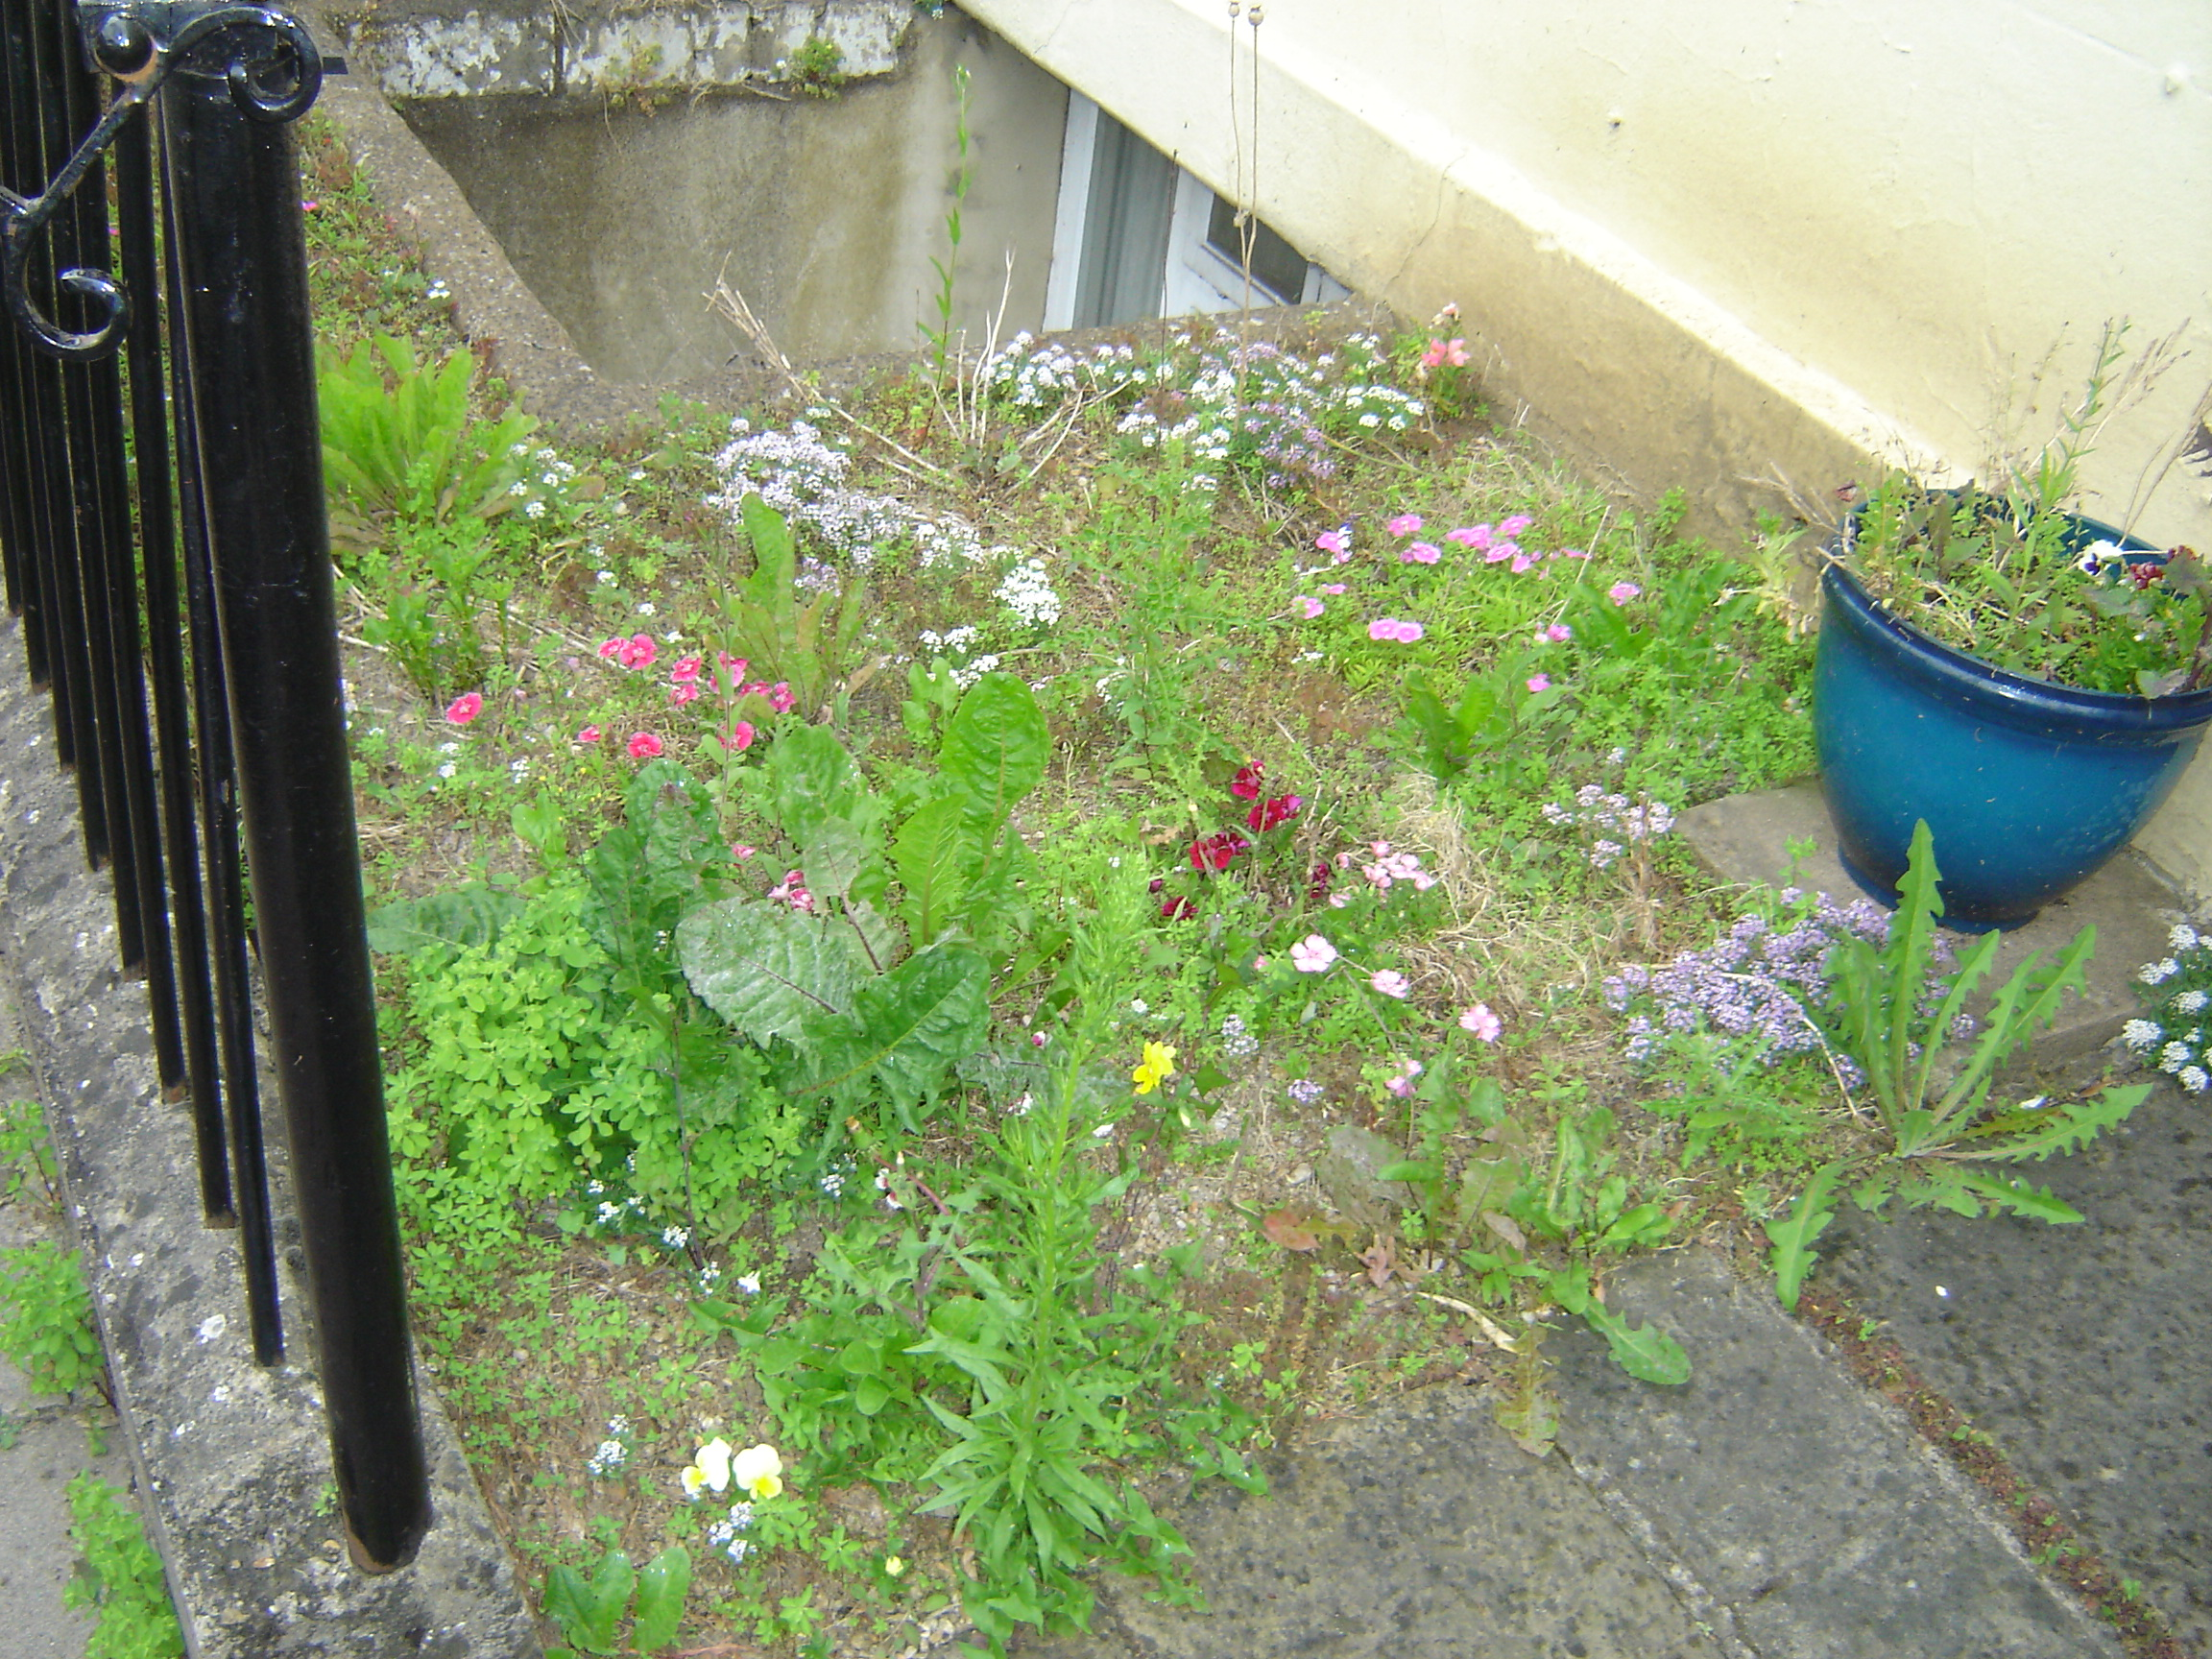 A garden patch with pinks and some other little flowers